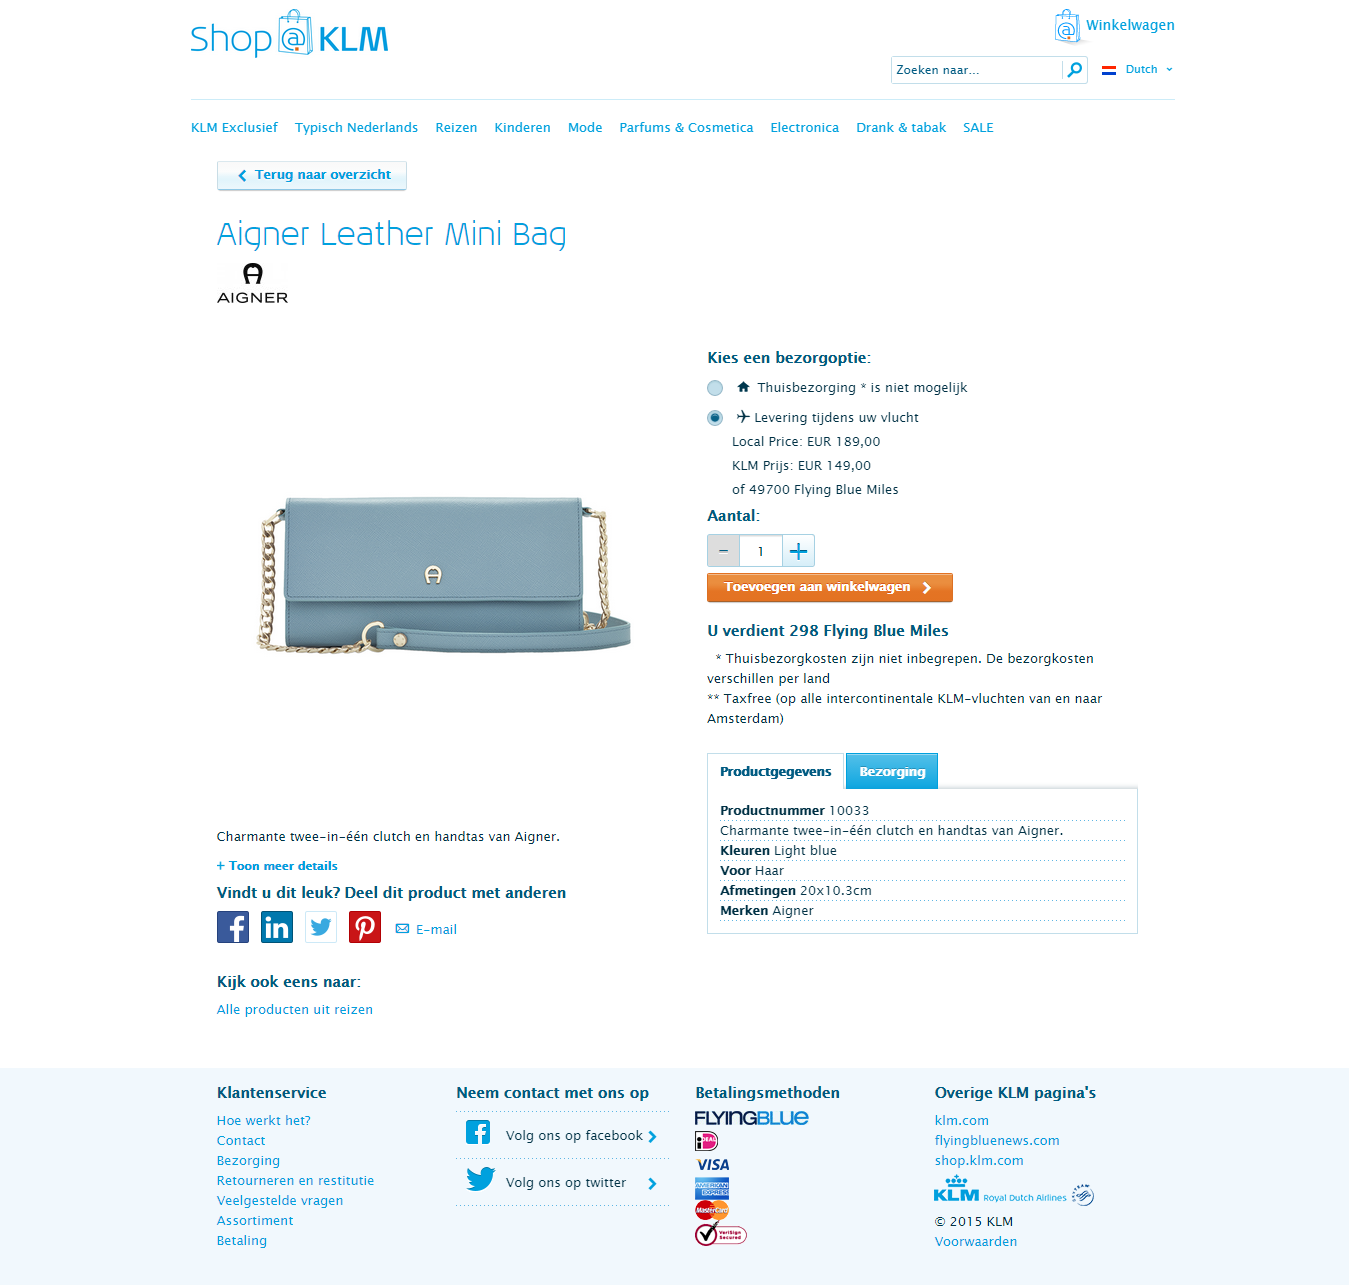 klm shop product page